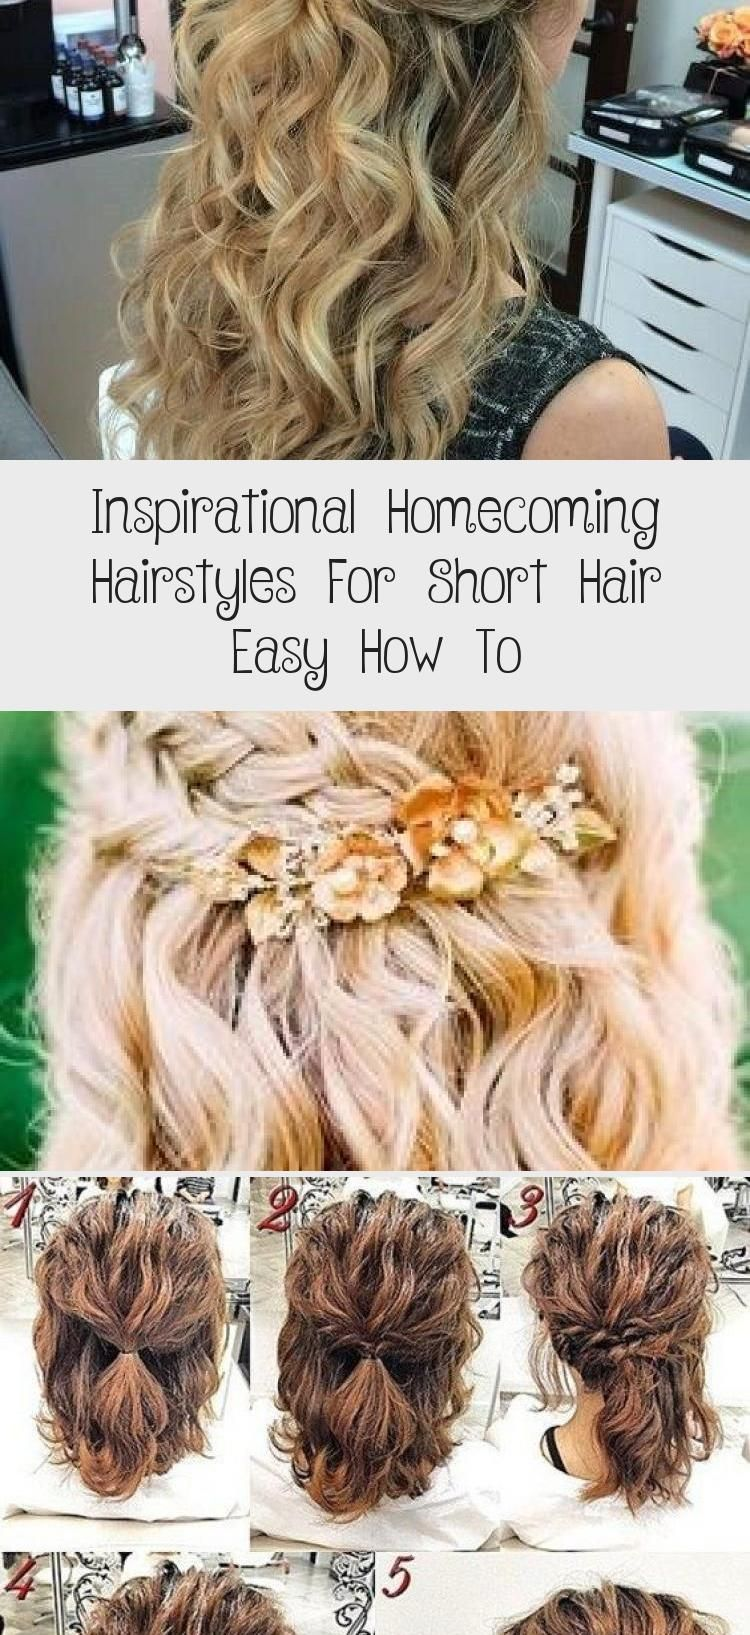 Inspirational Homecoming Hairstyles For Short Hair Easy How To Celina Home Short Hair Styles Easy Homecoming Hairstyles Short Hair Styles